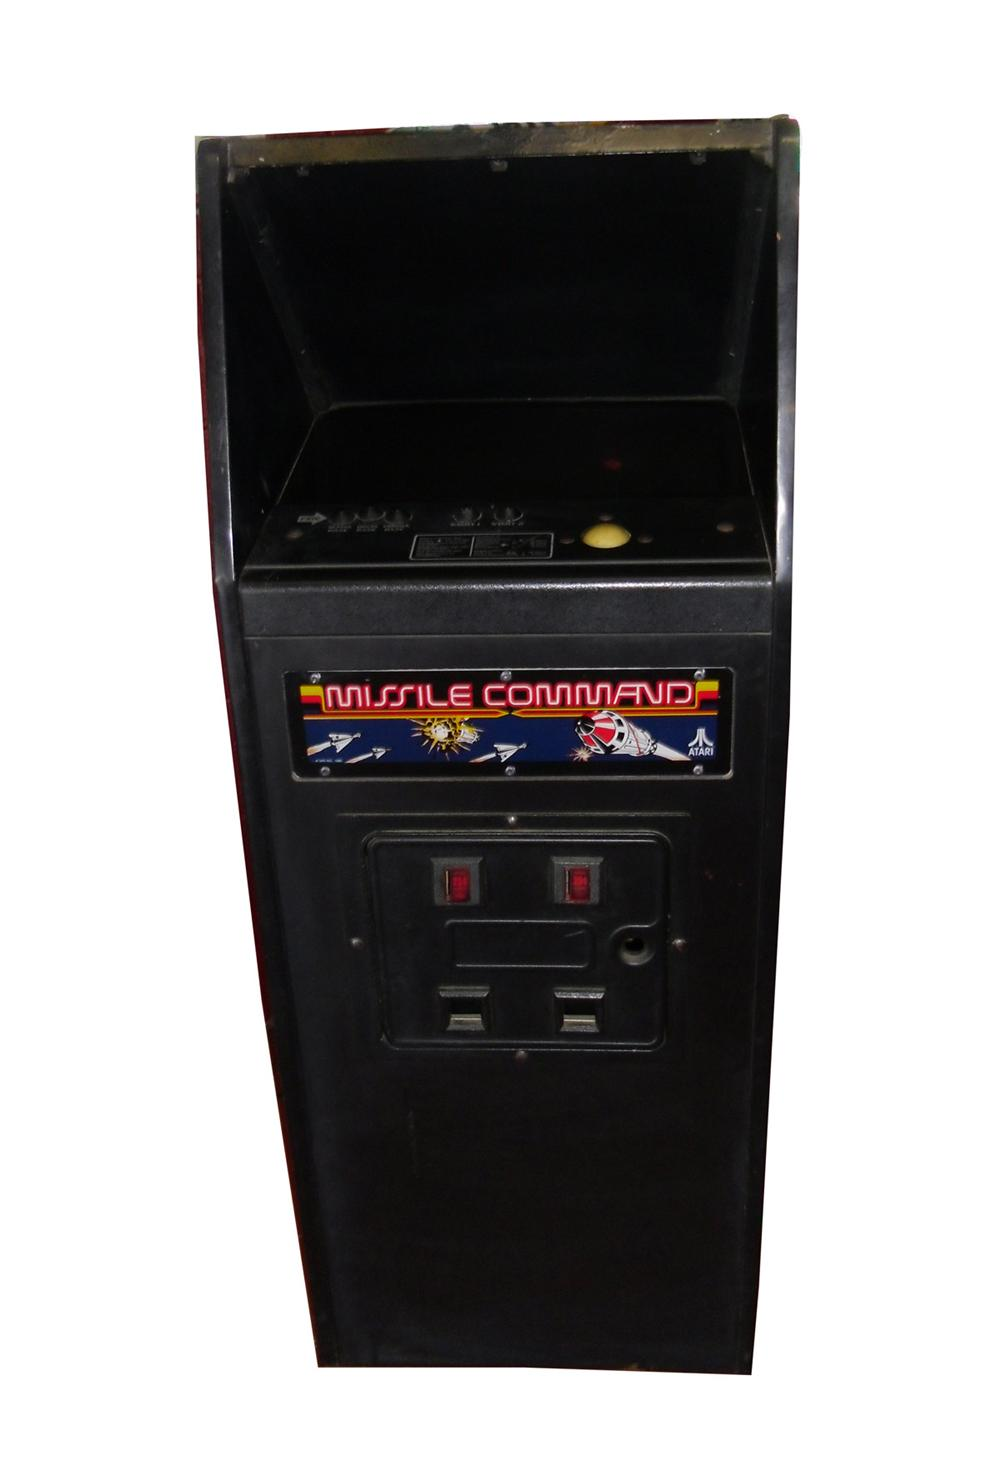 Original 1980 Atari Missile Command video arcade game. Works excellent! - Front 3/4 - 130856